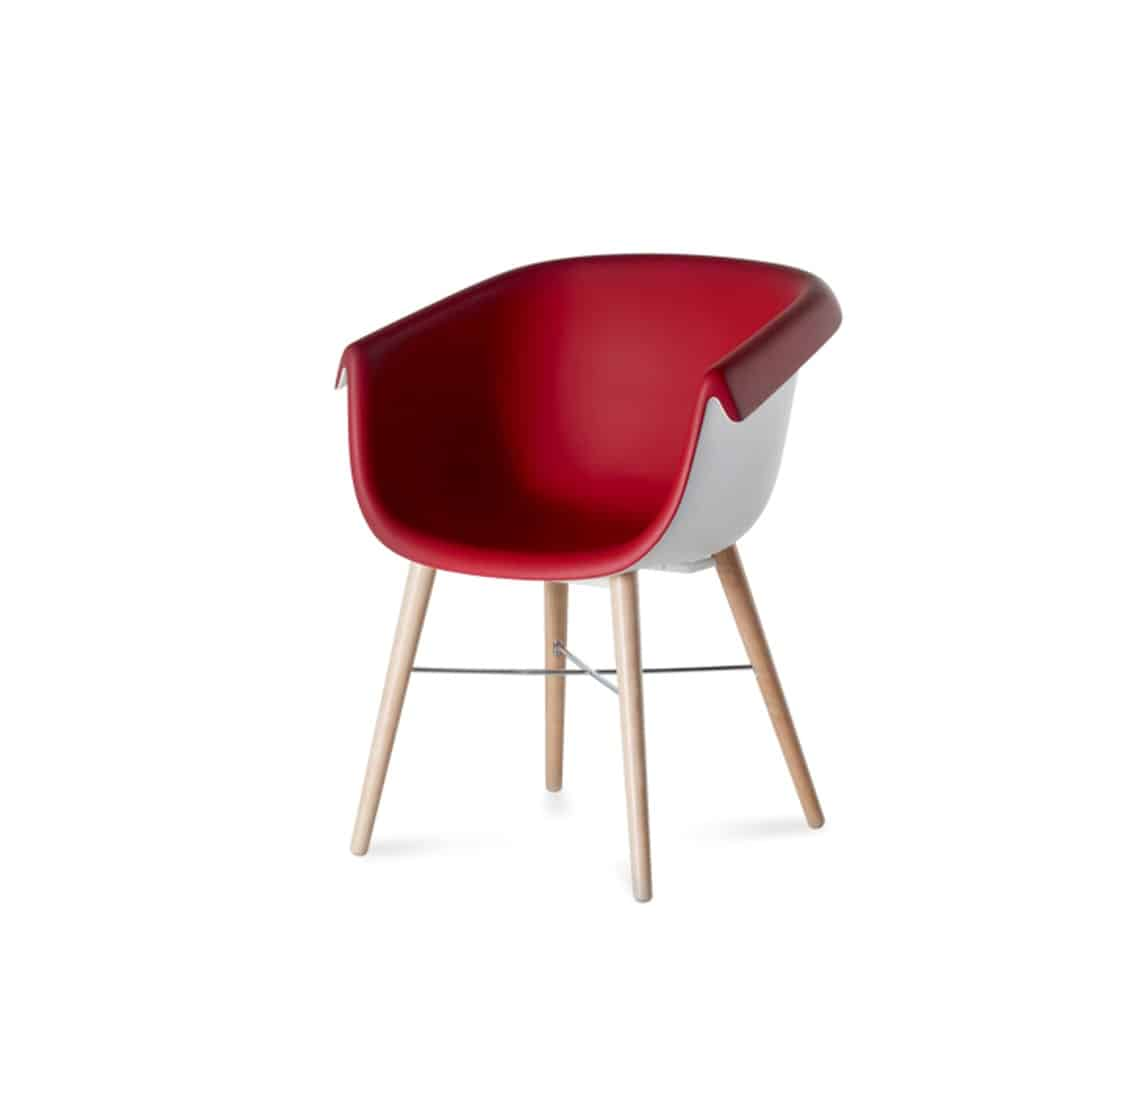 Collier two tone armchair DeFrae Contract Furniture red and white